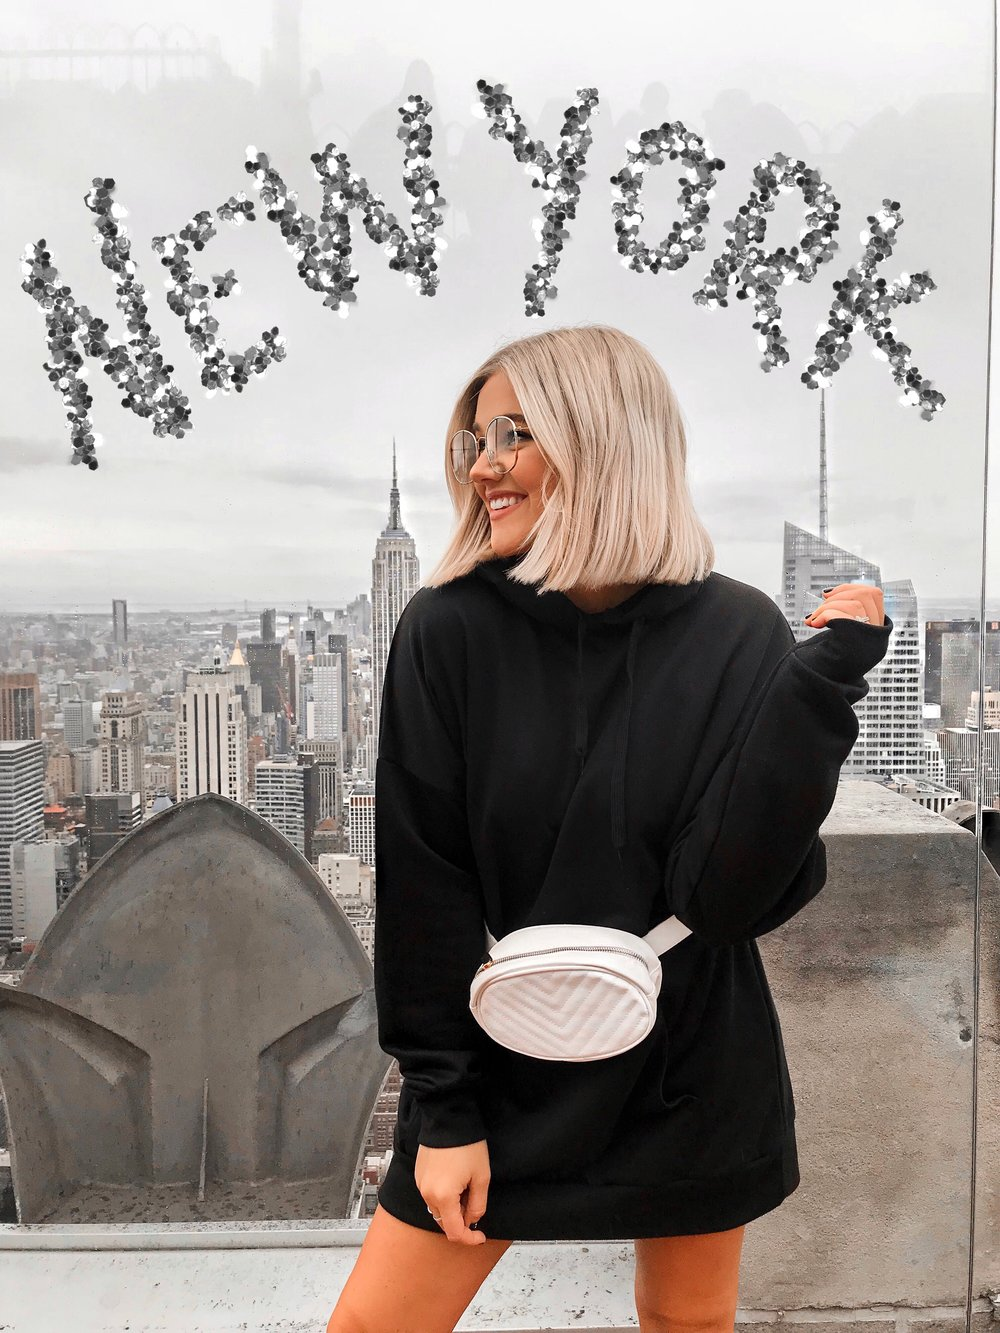 Bre Sheppard - My First NYFW - Top Of The Rock NYC.JPEG